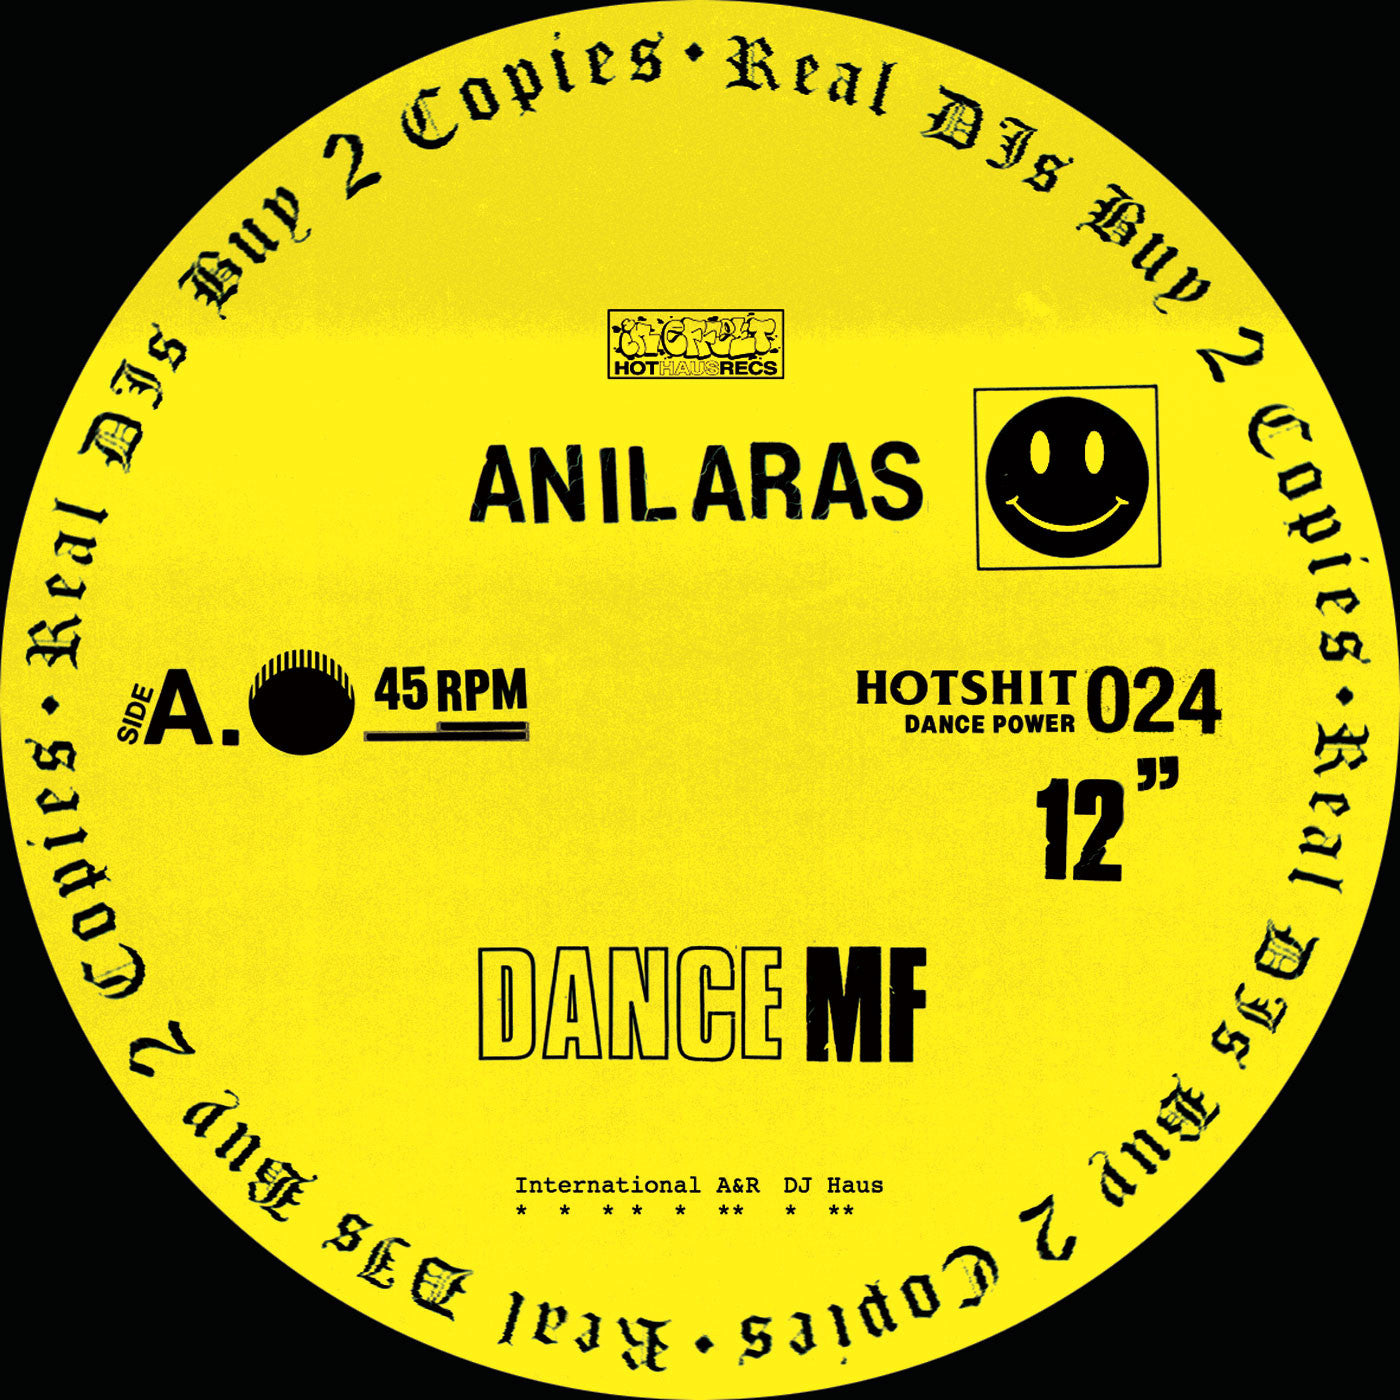 Anil Aras - Dance MF - Unearthed Sounds